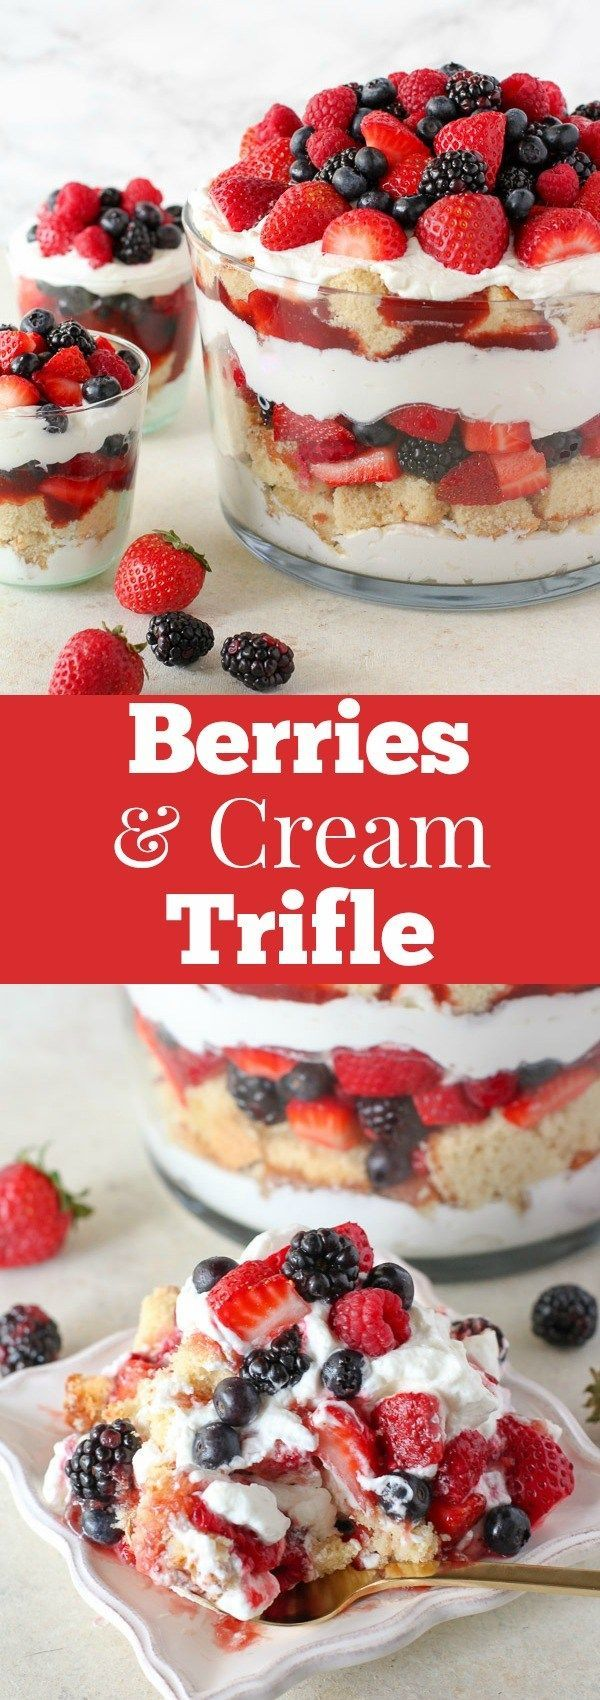 Berries and Cream Trifle - This easy trifle includes layers of cake, fresh berries, and whipped cream. Take a shortcut with your favorite store bought pound cake or angel food cake - or make your own. You'll love this simple and beautiful red, white, and